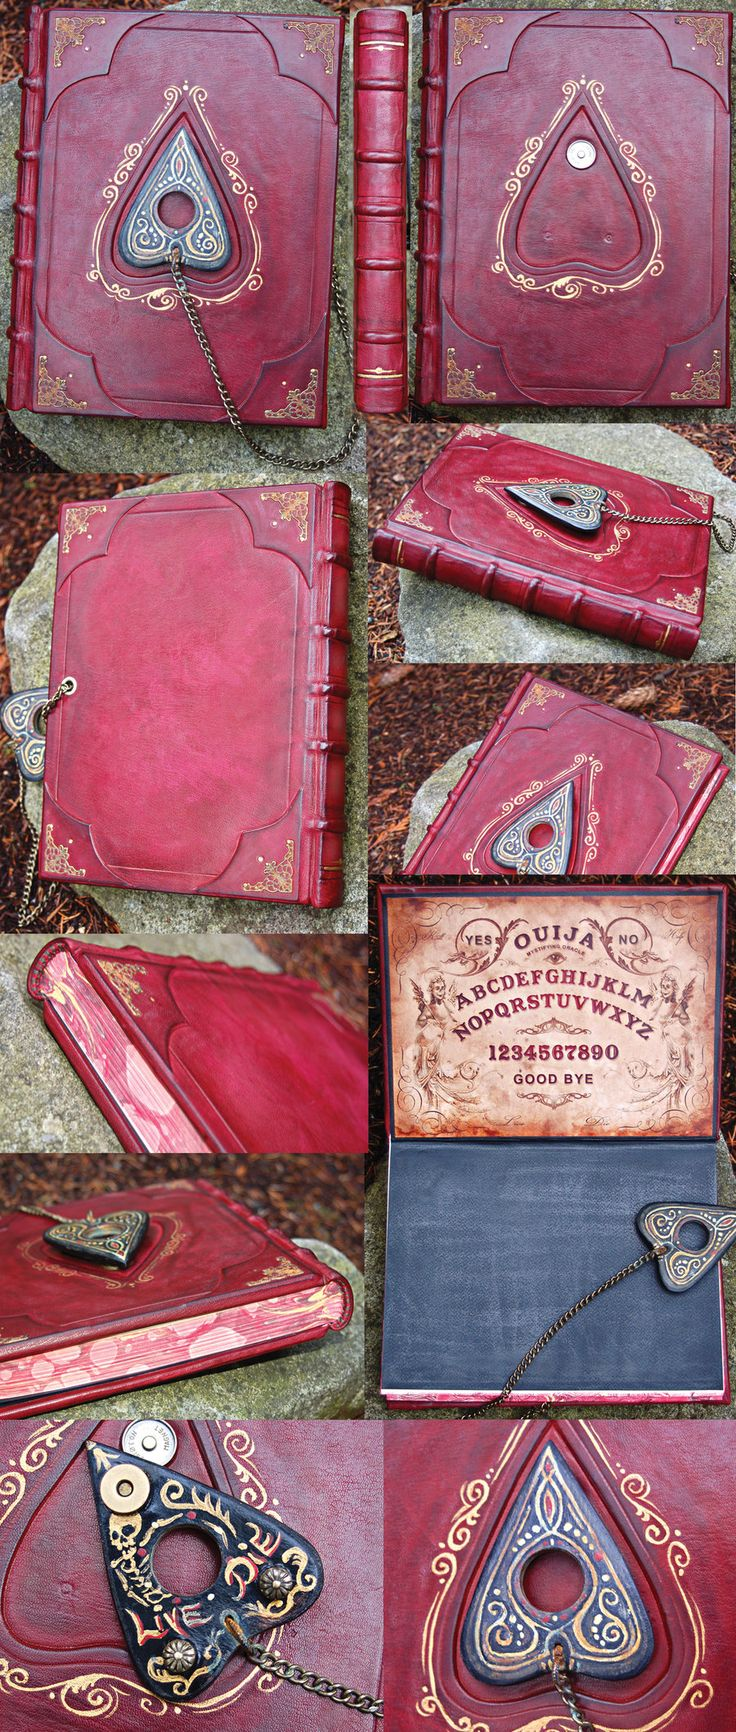 Victorian Ouija Board Spirit Jornal  	©2012 ~BCcreativity  This one took some time to create. Encased in a beautiful Italian goats leather hand tooled. I created a Planchette and designed a Ouija board that is on the inside cover.   The planchette is chained to the back cover and is connected on the front to a magnetic facet.  The text block is 8.5x11 and the finished size is 8.75x11.25  It contains marbled edge...